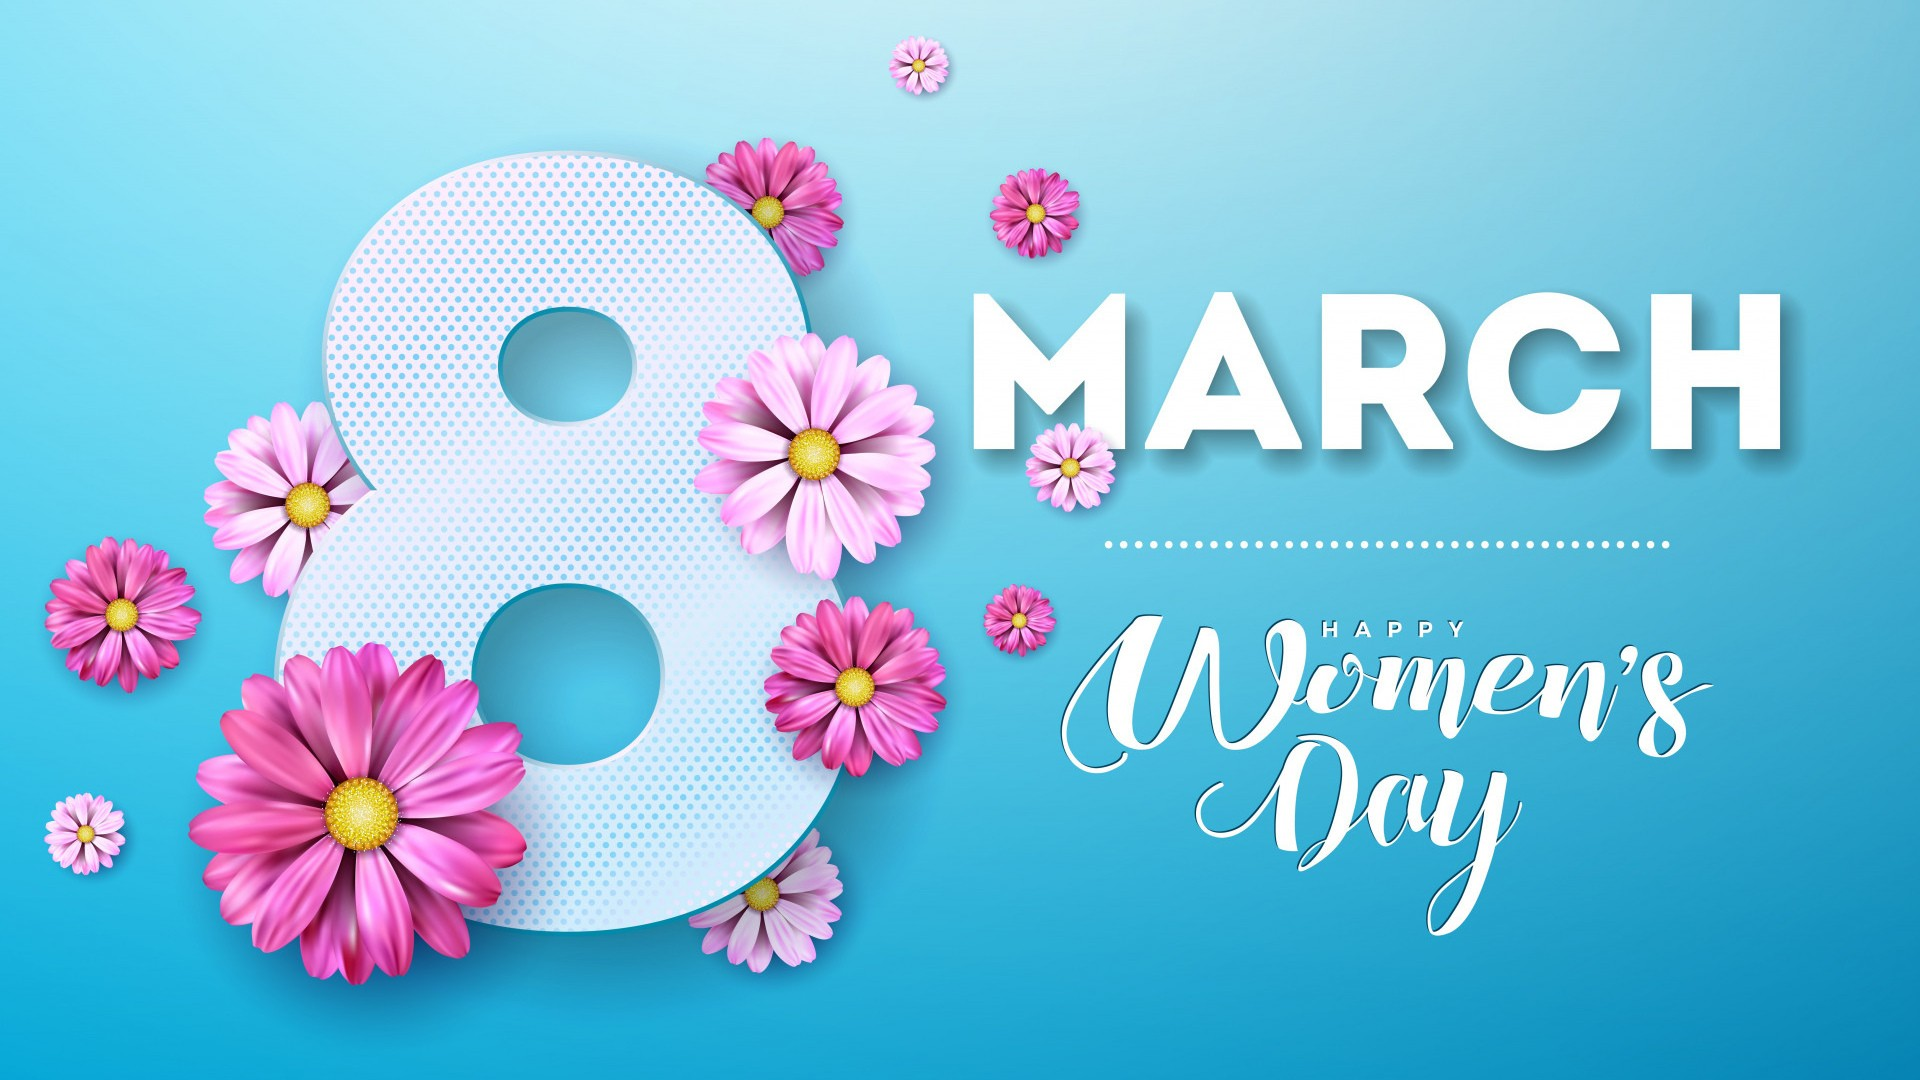 Happy Women's Day high quality image